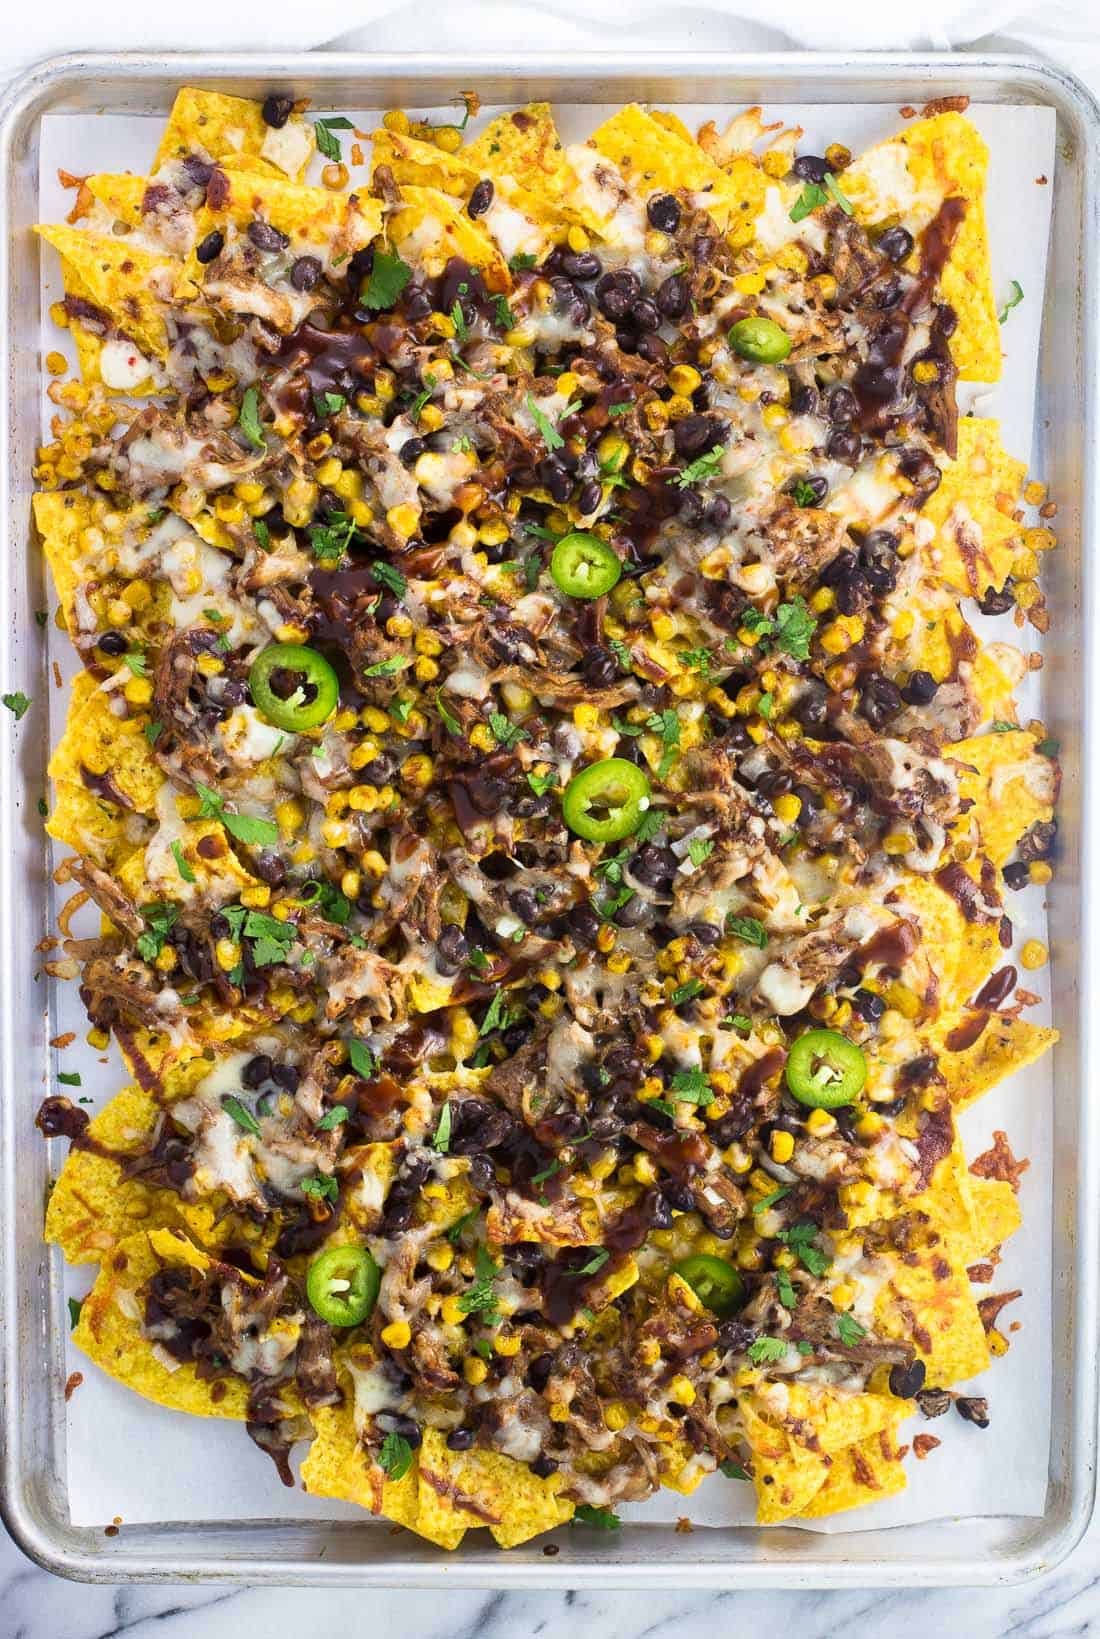 A sheet pan full of pulled pork nachos ready to serve